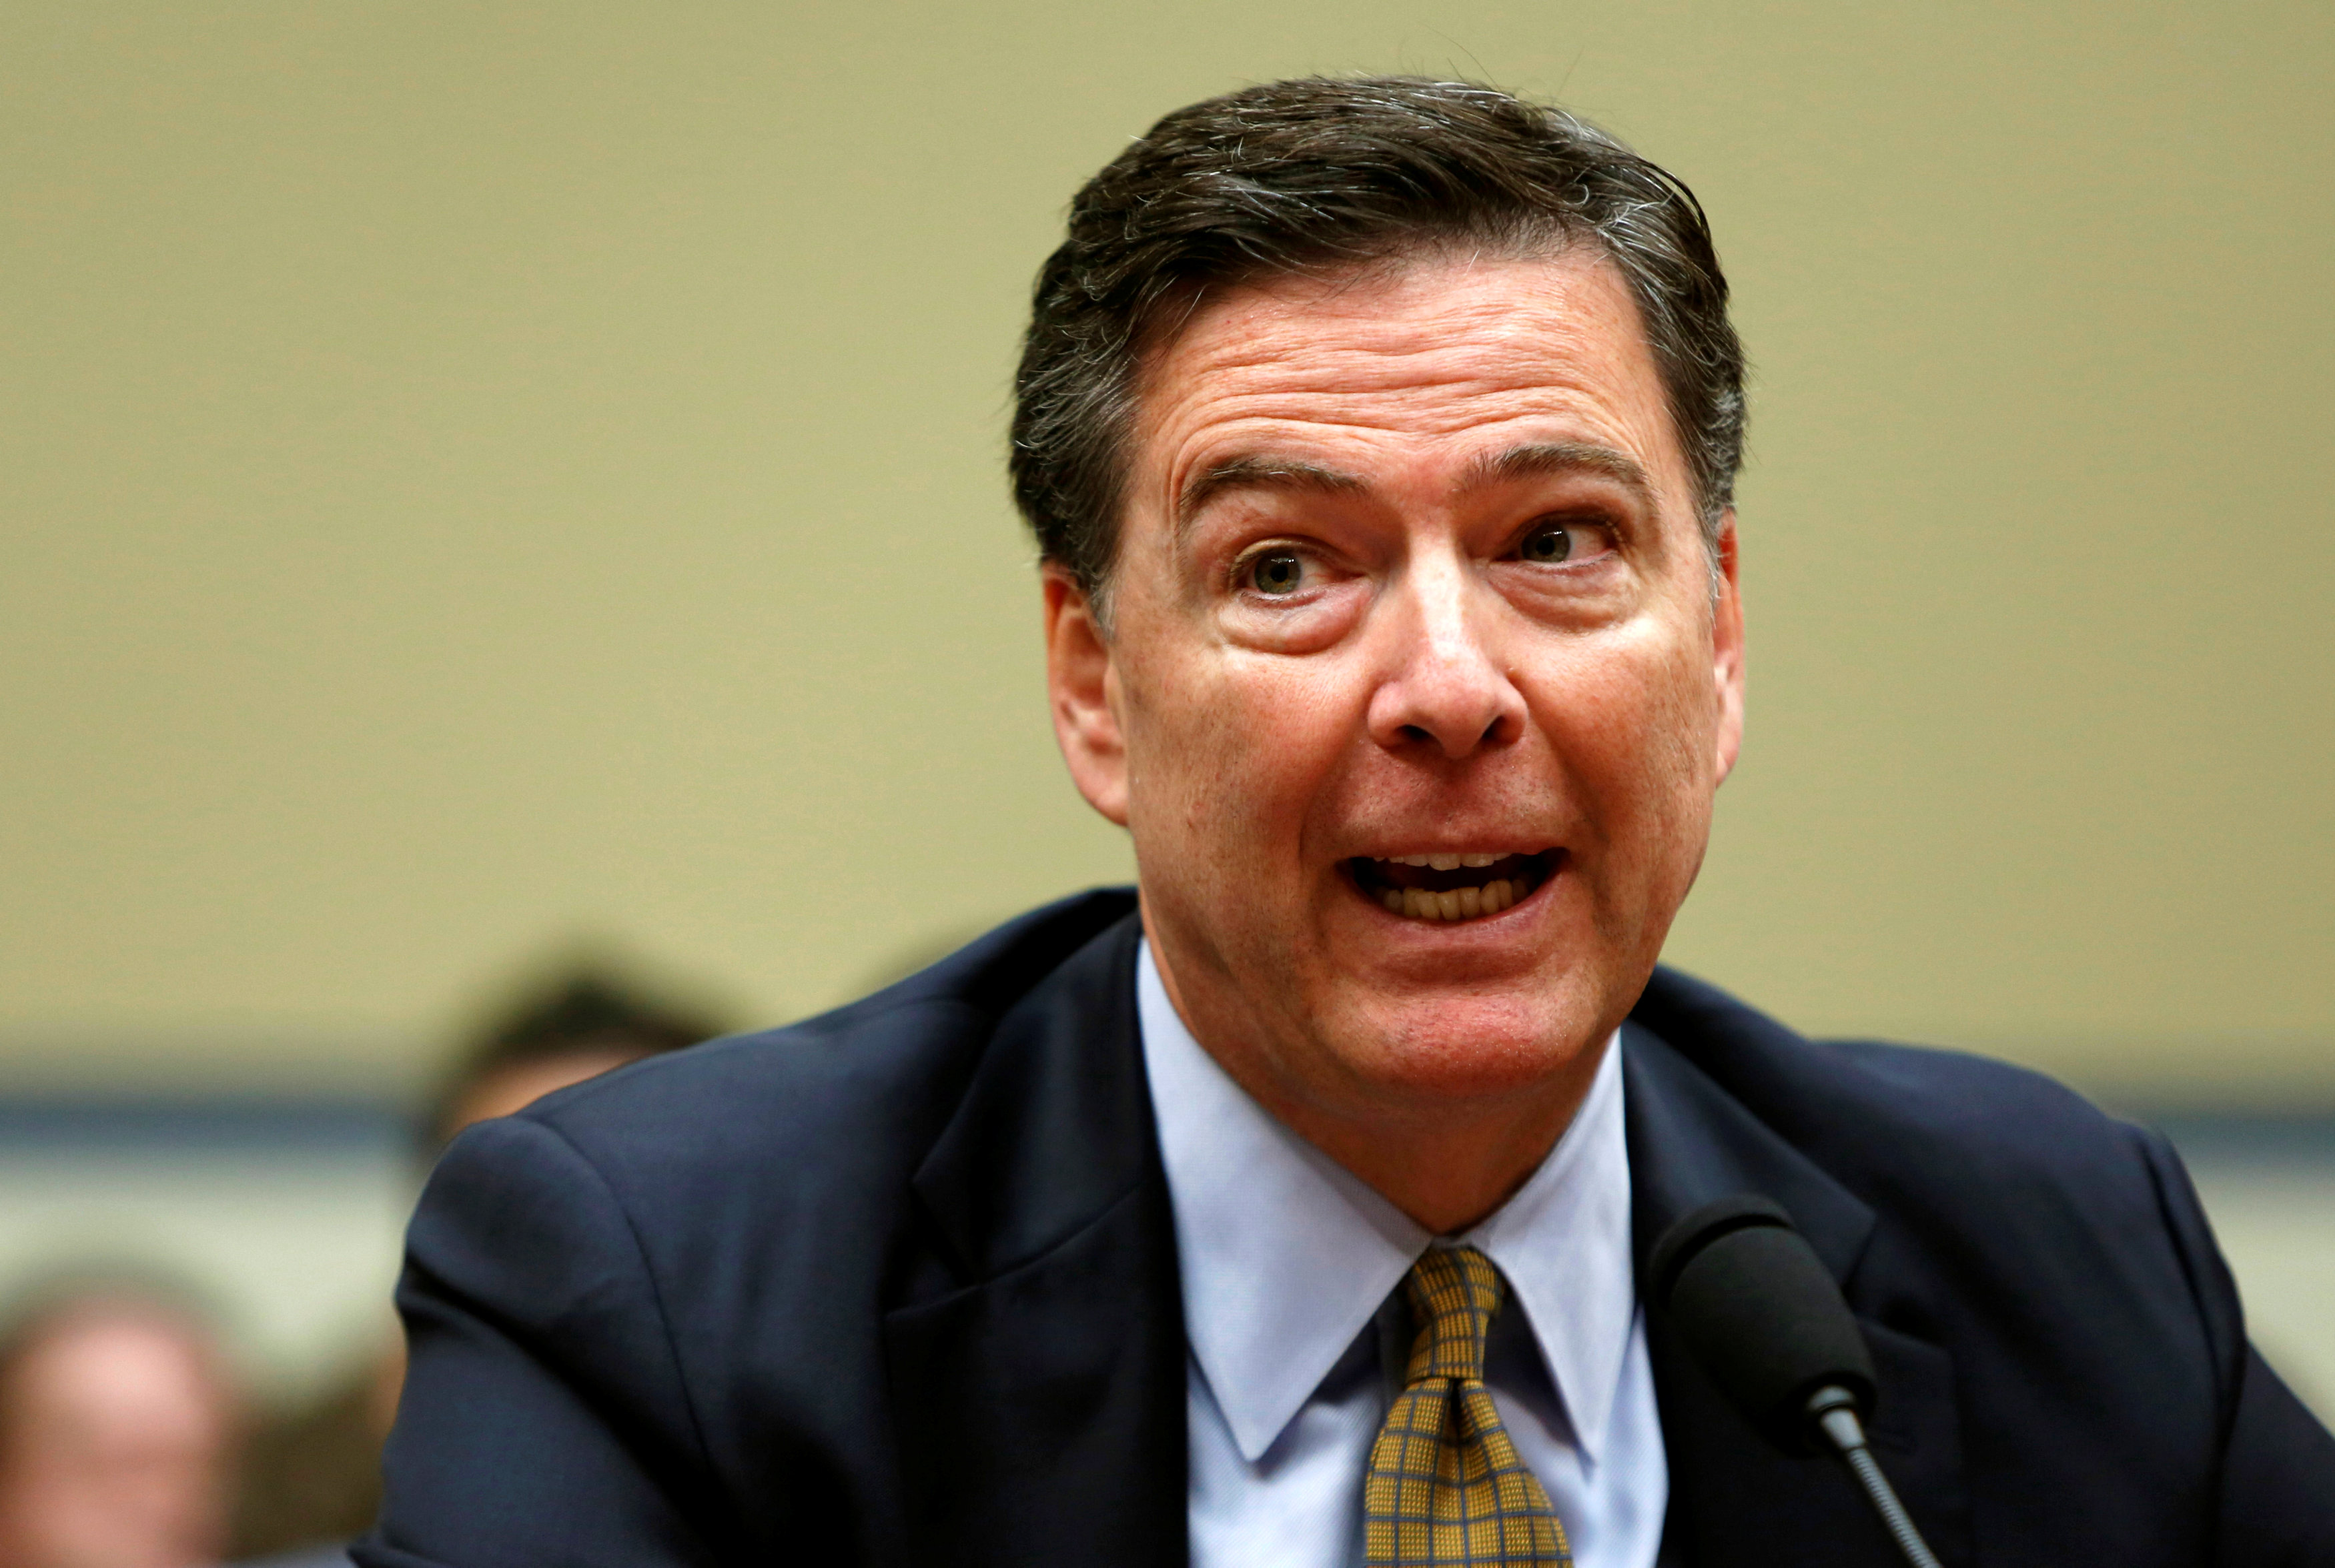 FBI Director Comey testifies before House Oversight and Government Reform Committee in Washington